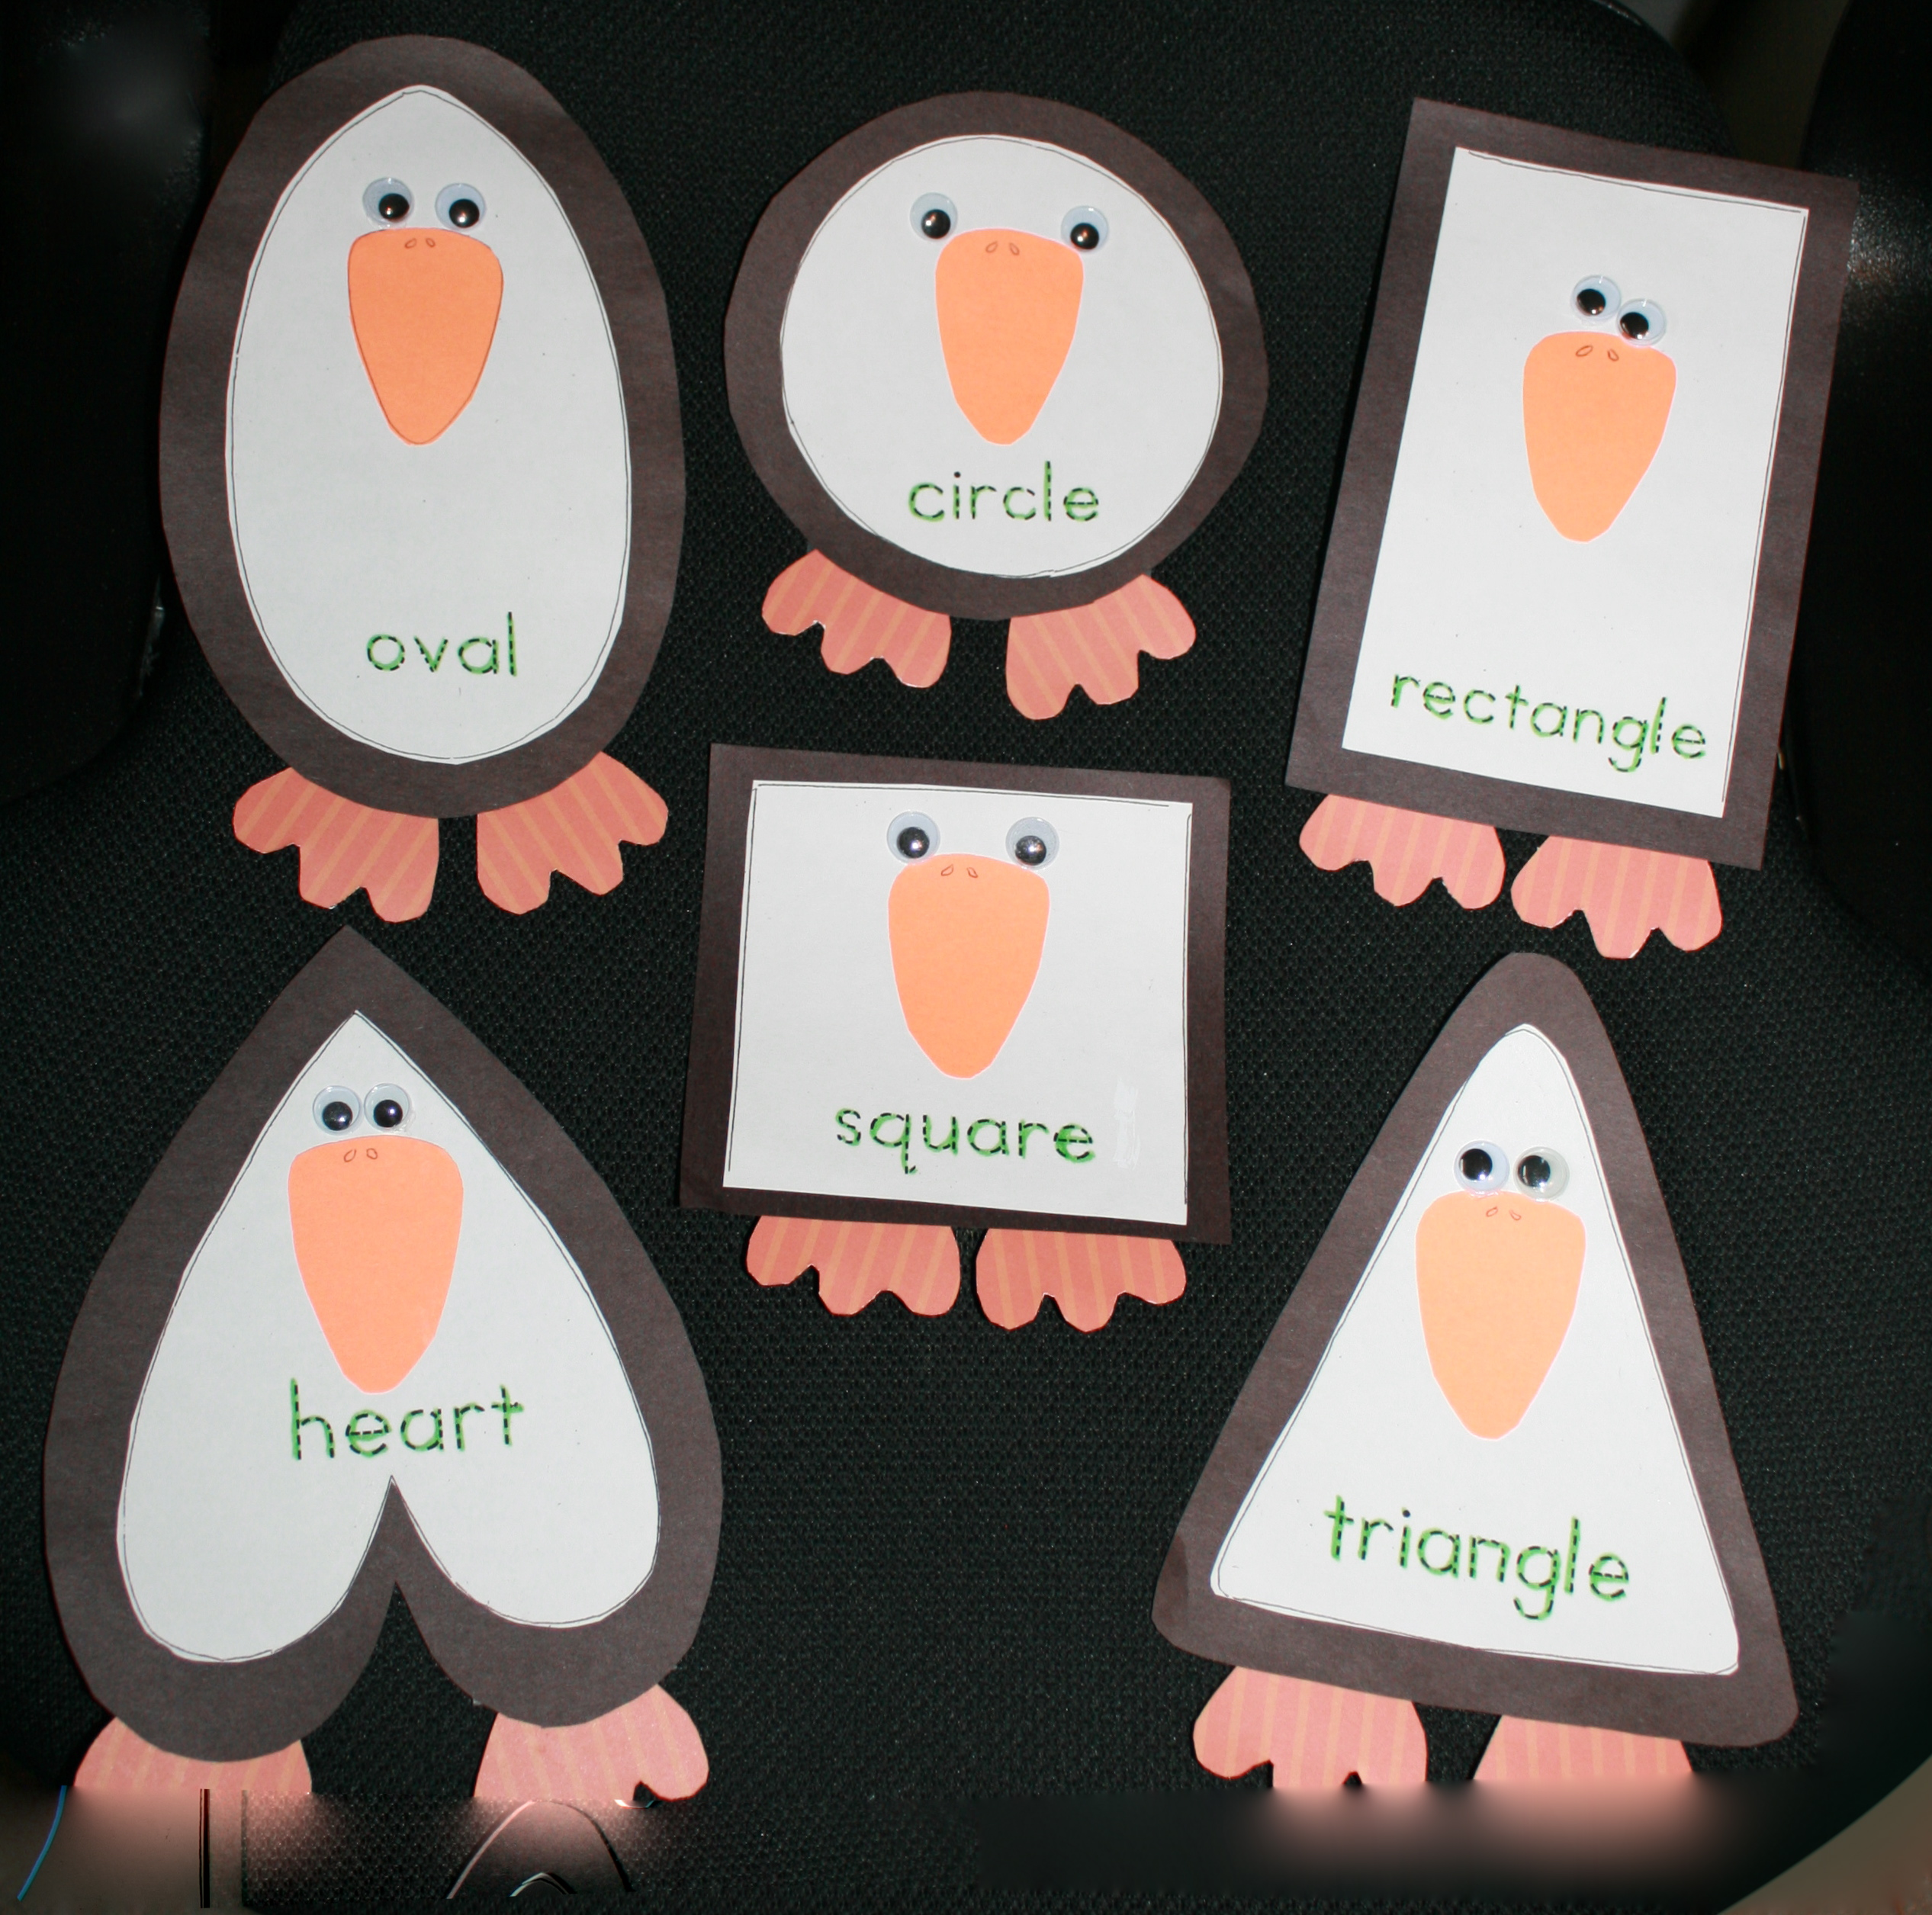 penguin activities, free Common Core lessons for kindergarten, free common core lessons for 1st grade, penguin lessons, 2D shape lessons, shape booklet, Silly Shaped Penguins, hexagon activities, pentagon activities, octagon activities,